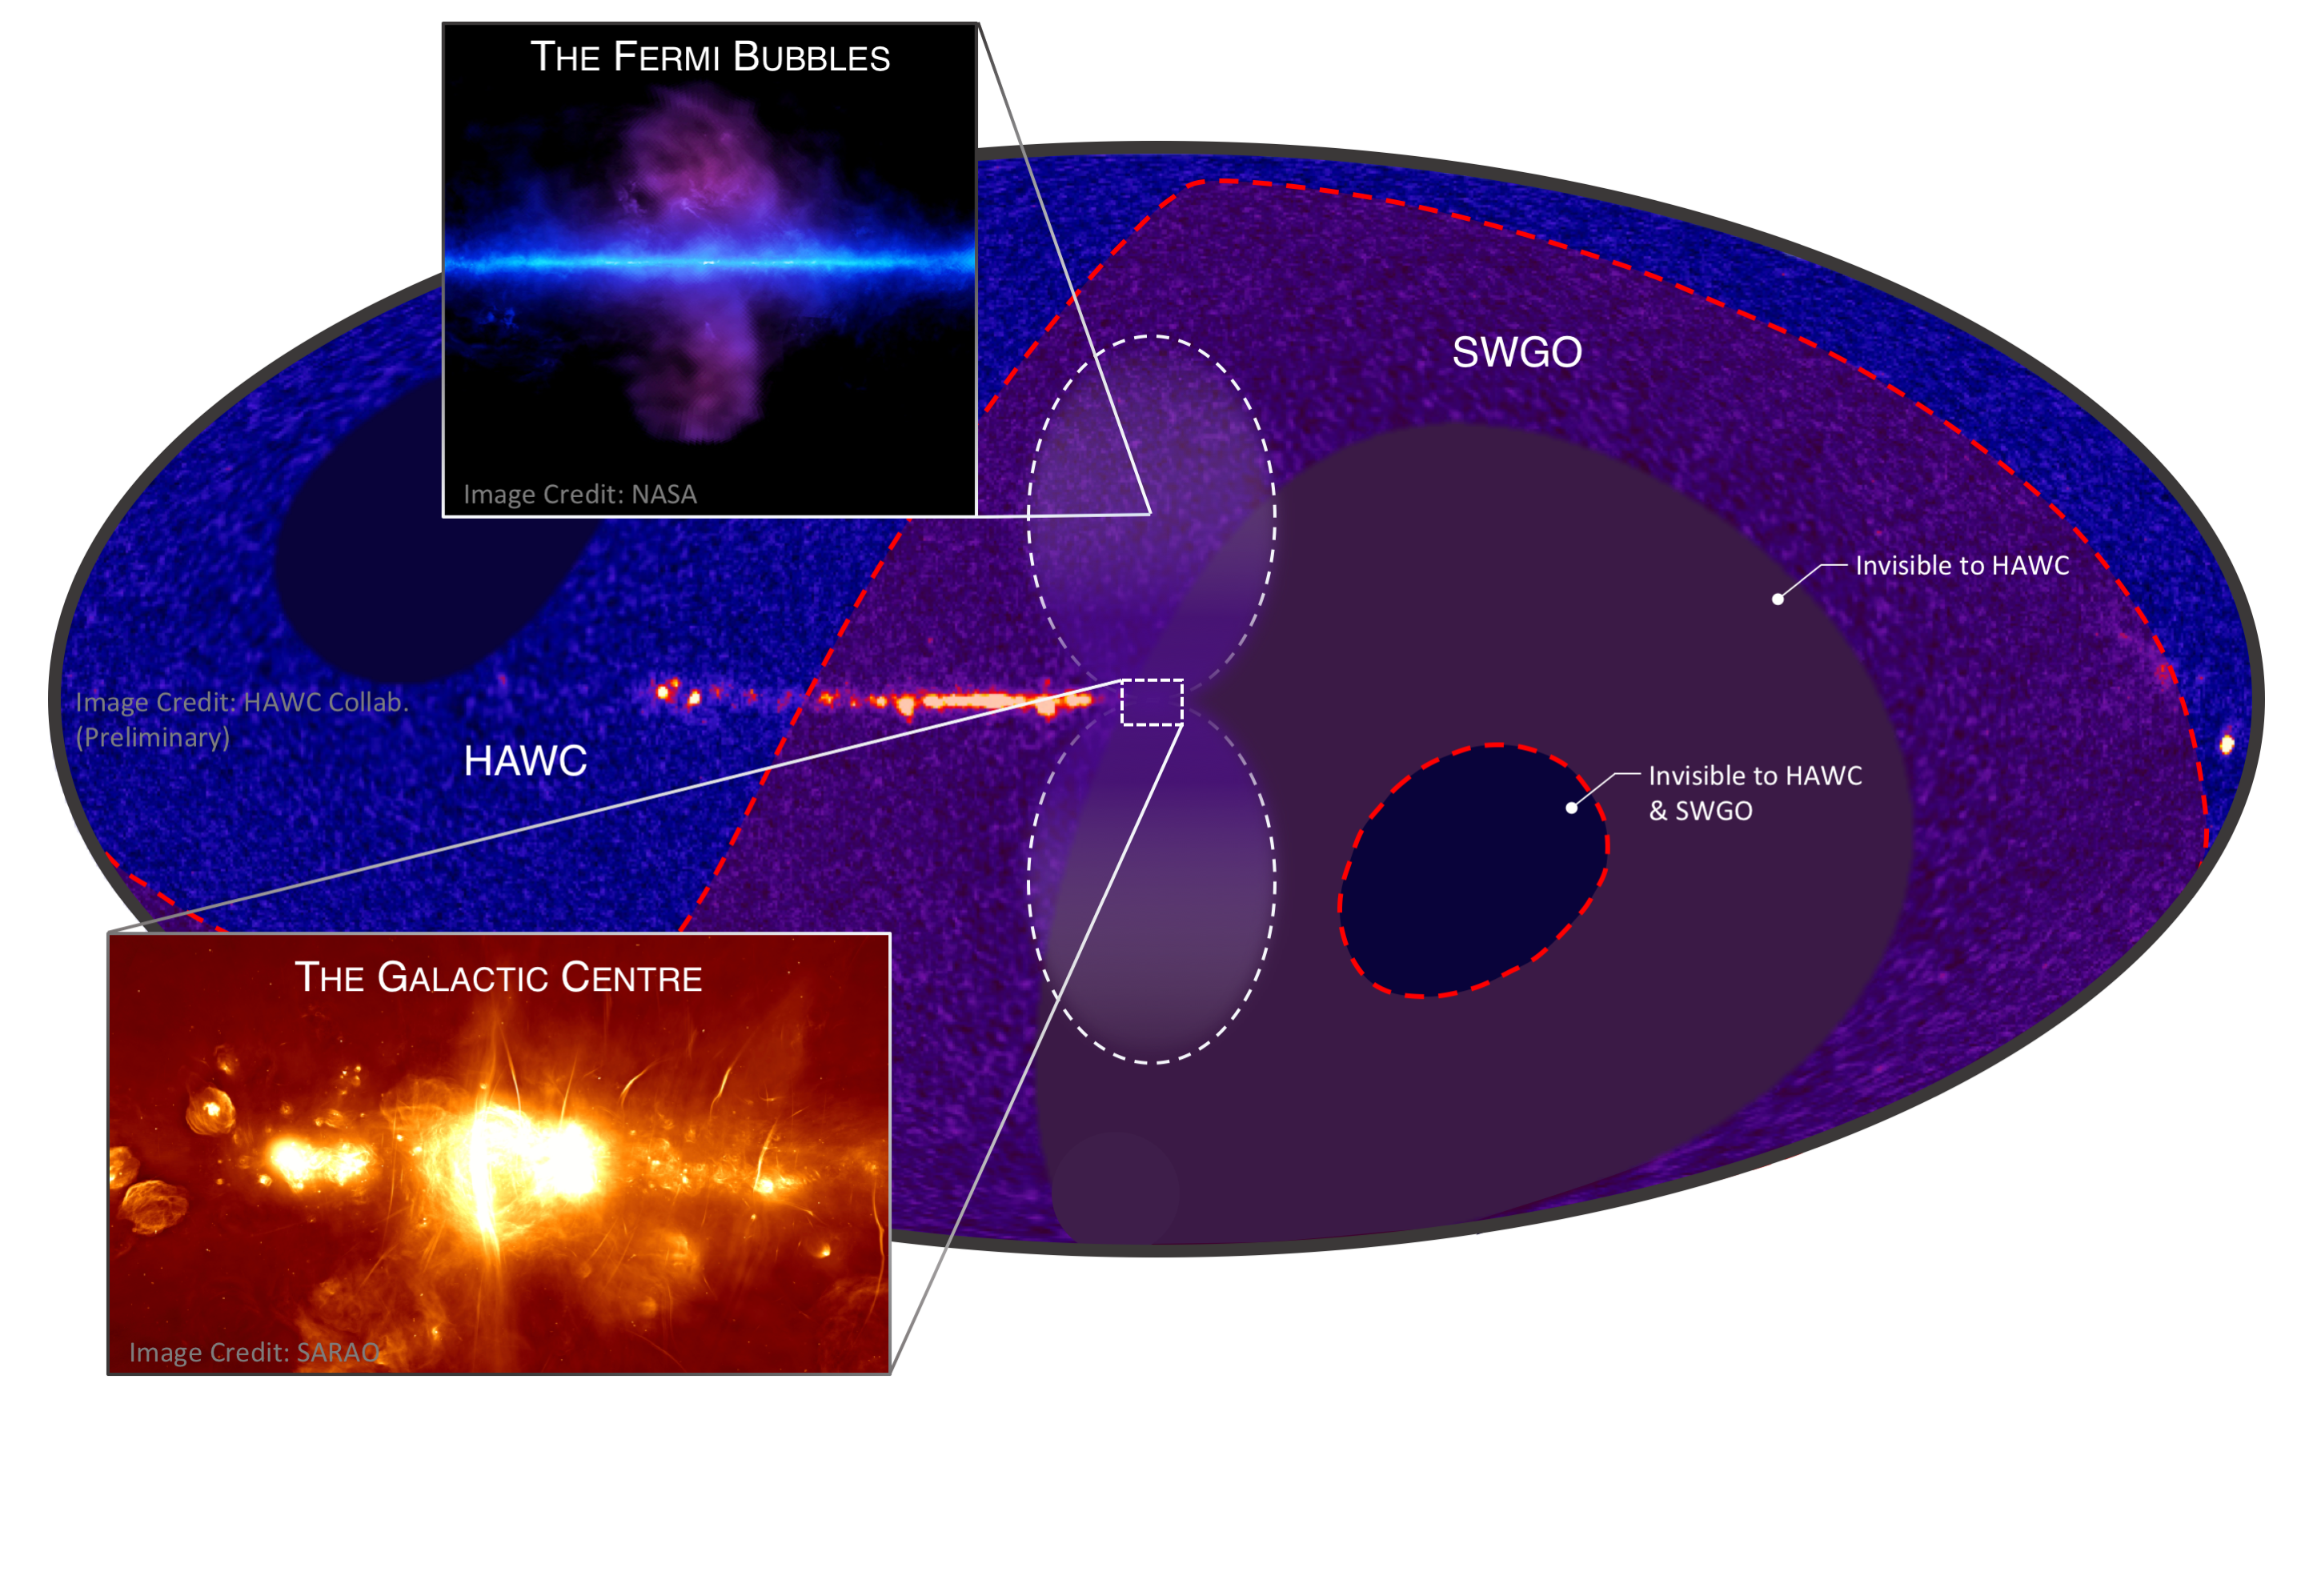 Gamma-ray sky image as seen by the (current) HAWC and (future) SWGO observatories